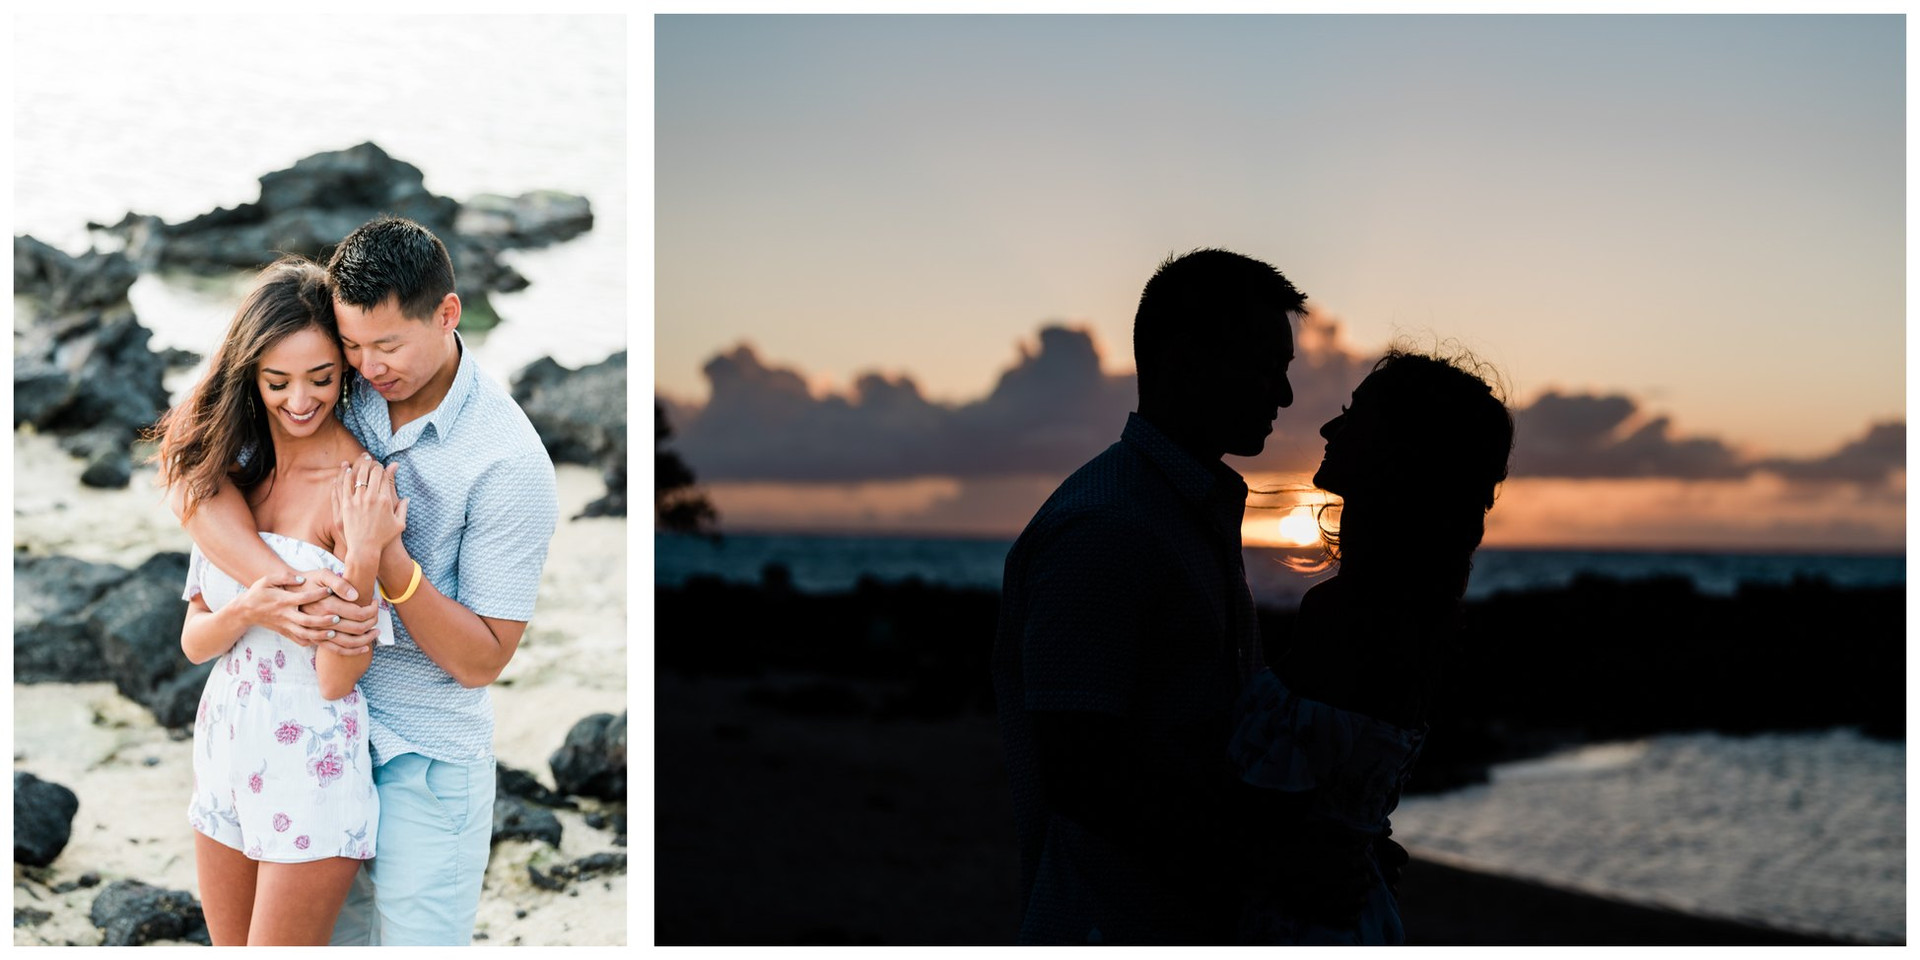 Hawaii Engagment Photographer 5.jpg